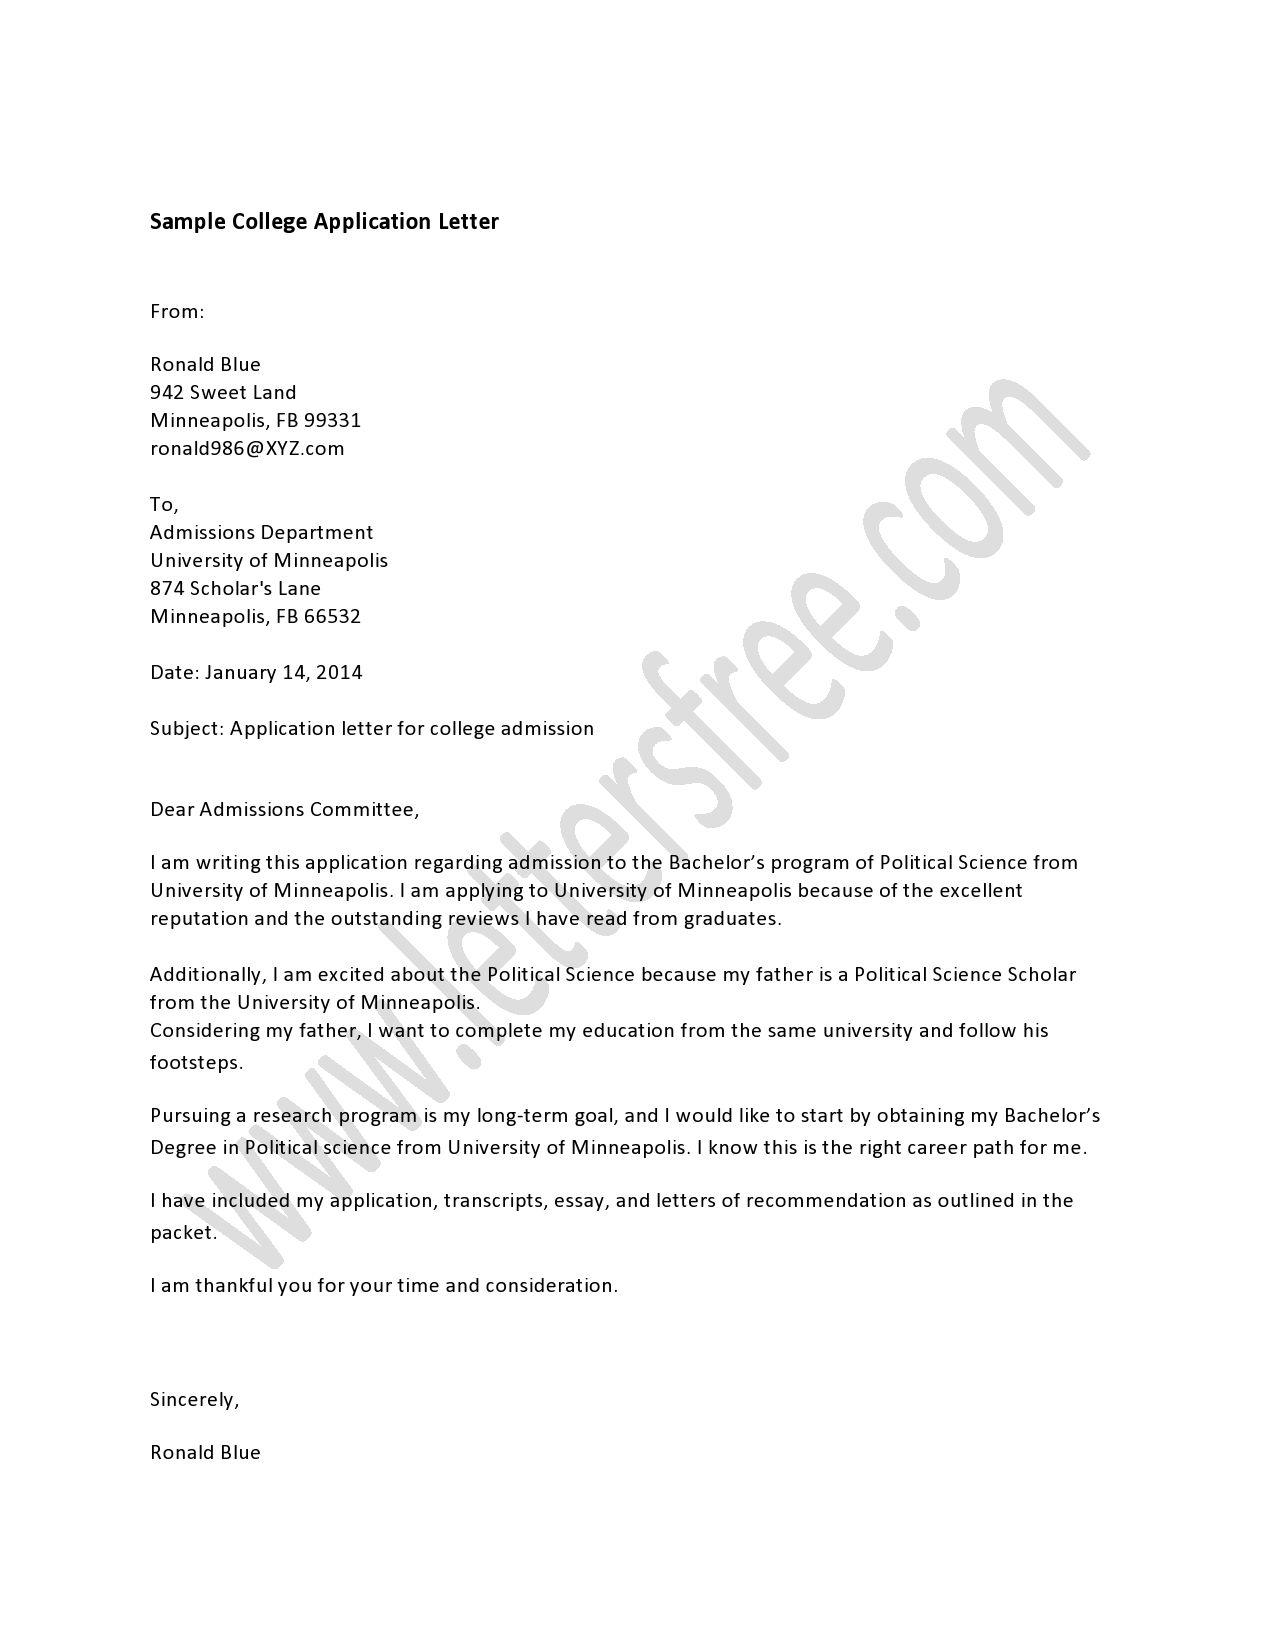 how to start your application letter in college